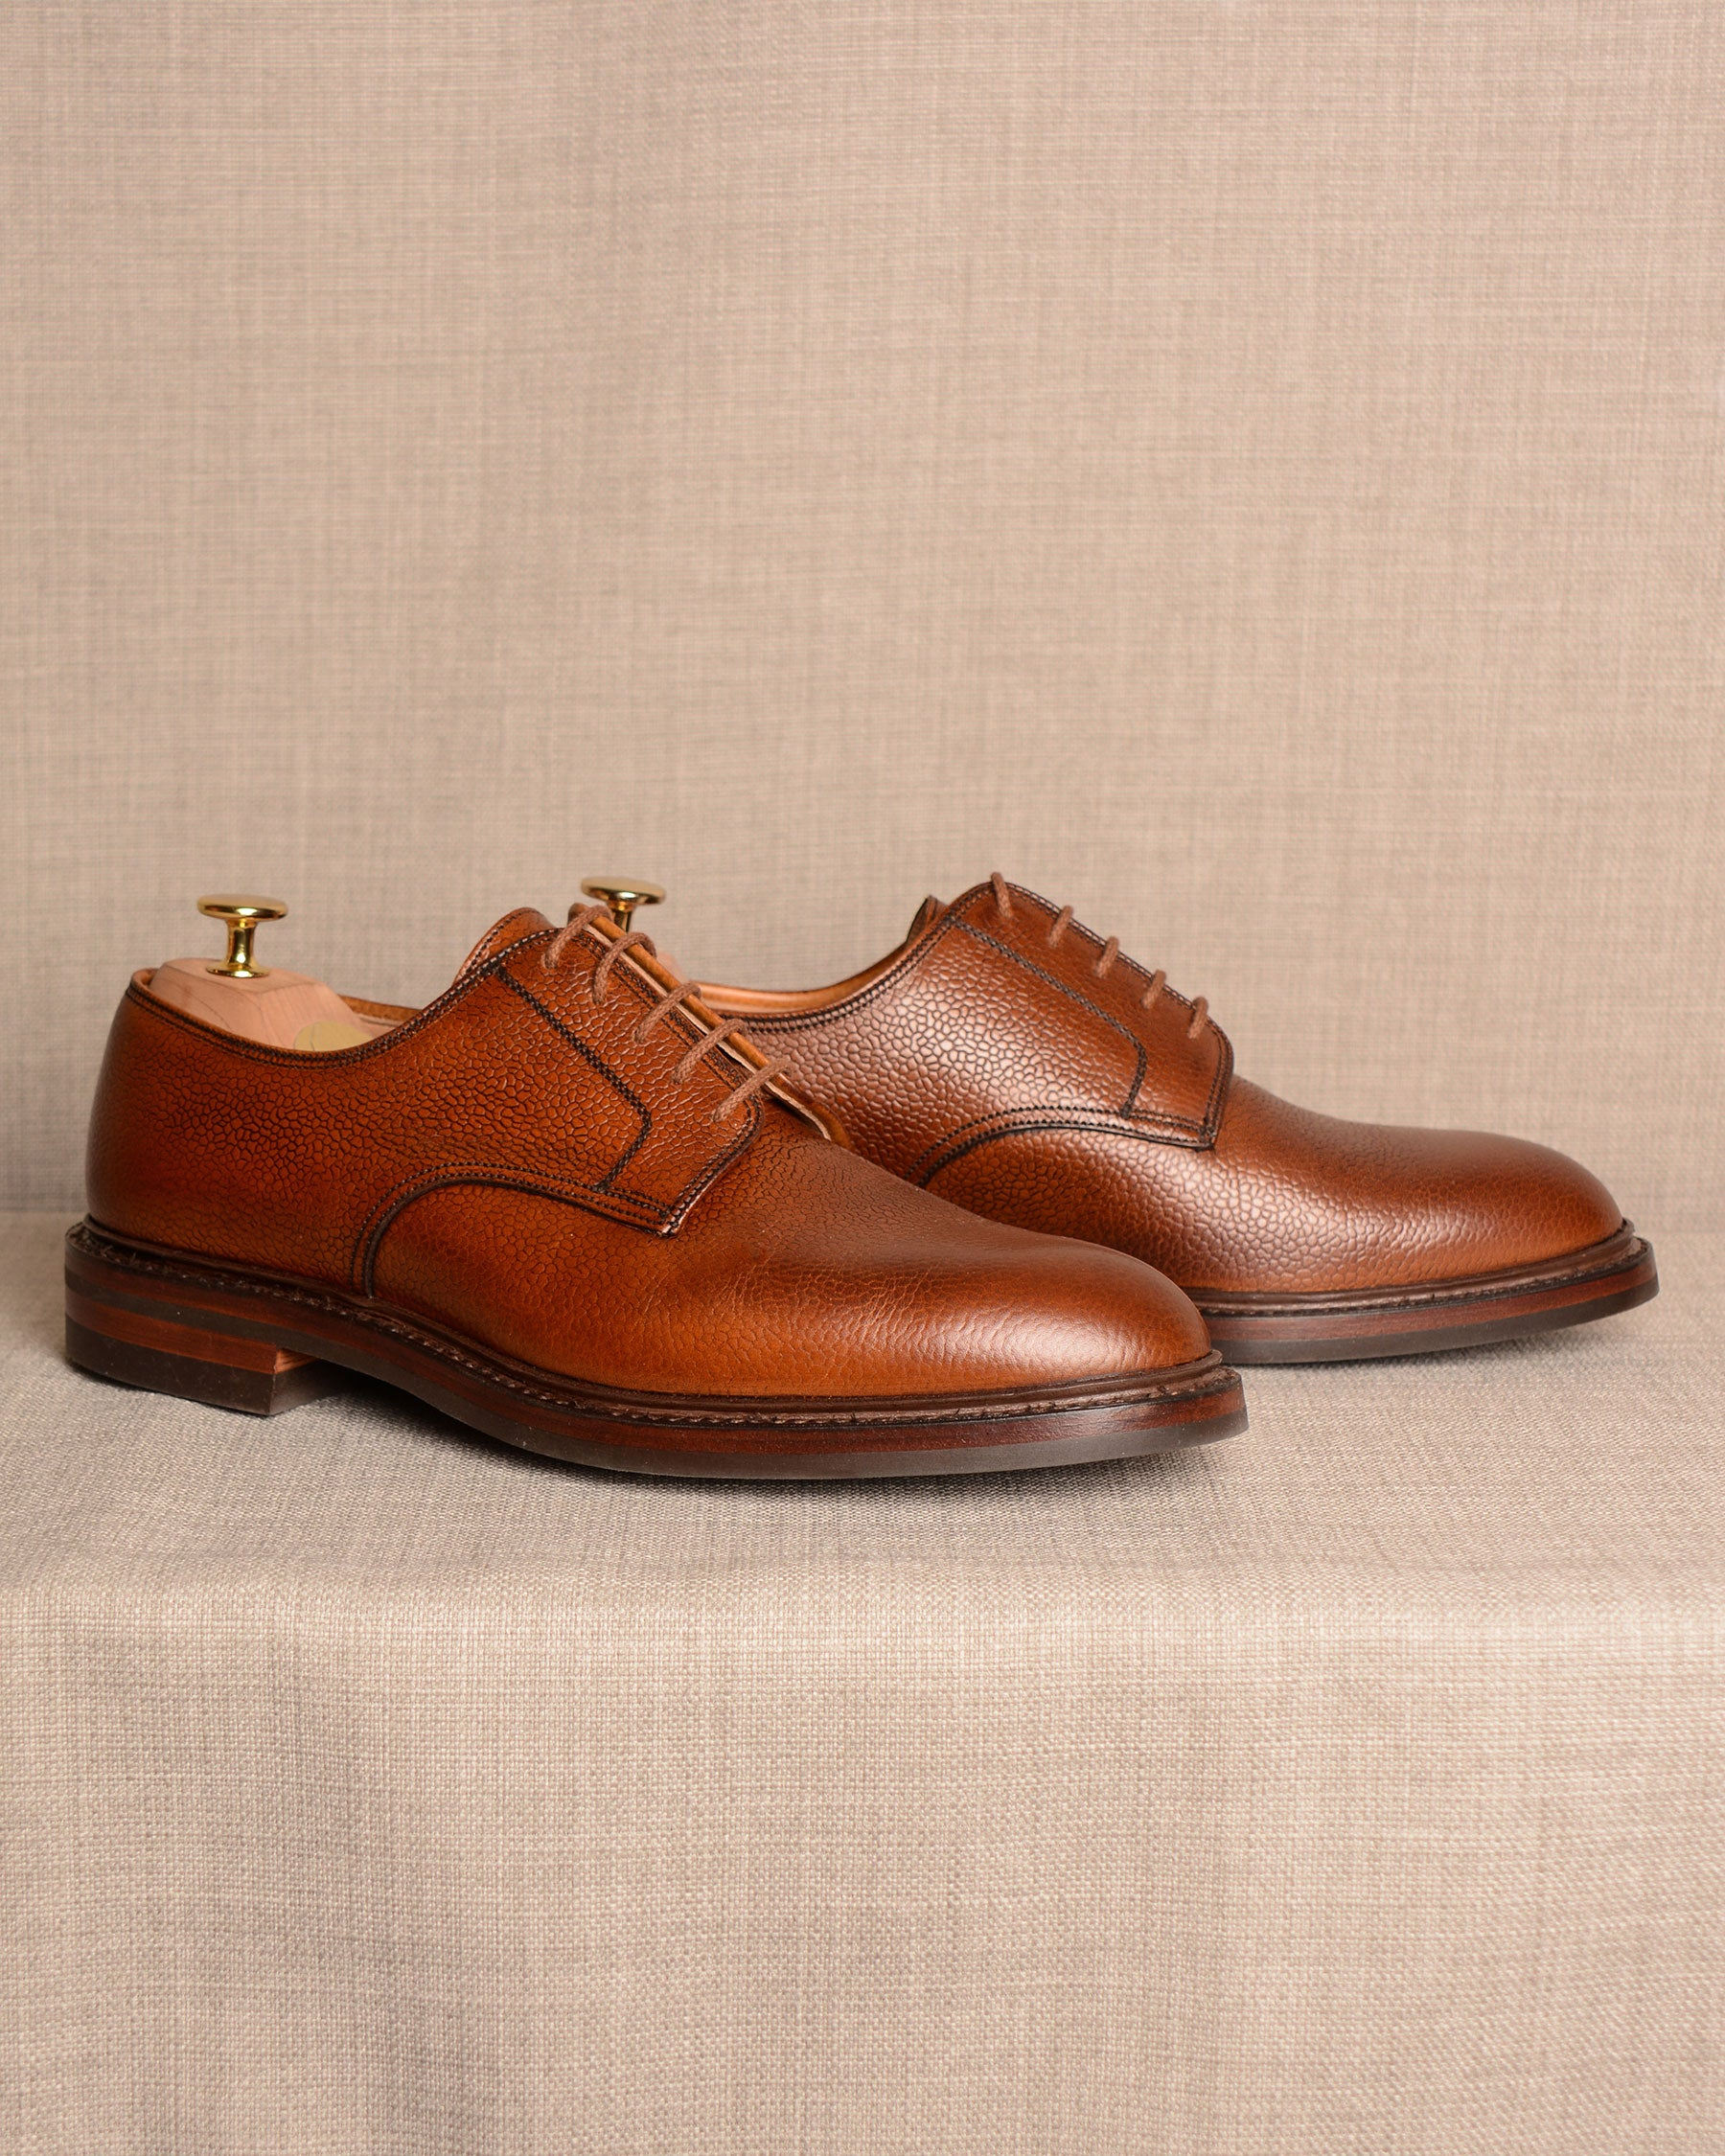 Crockett & Jones Grasmere - Tan Grain